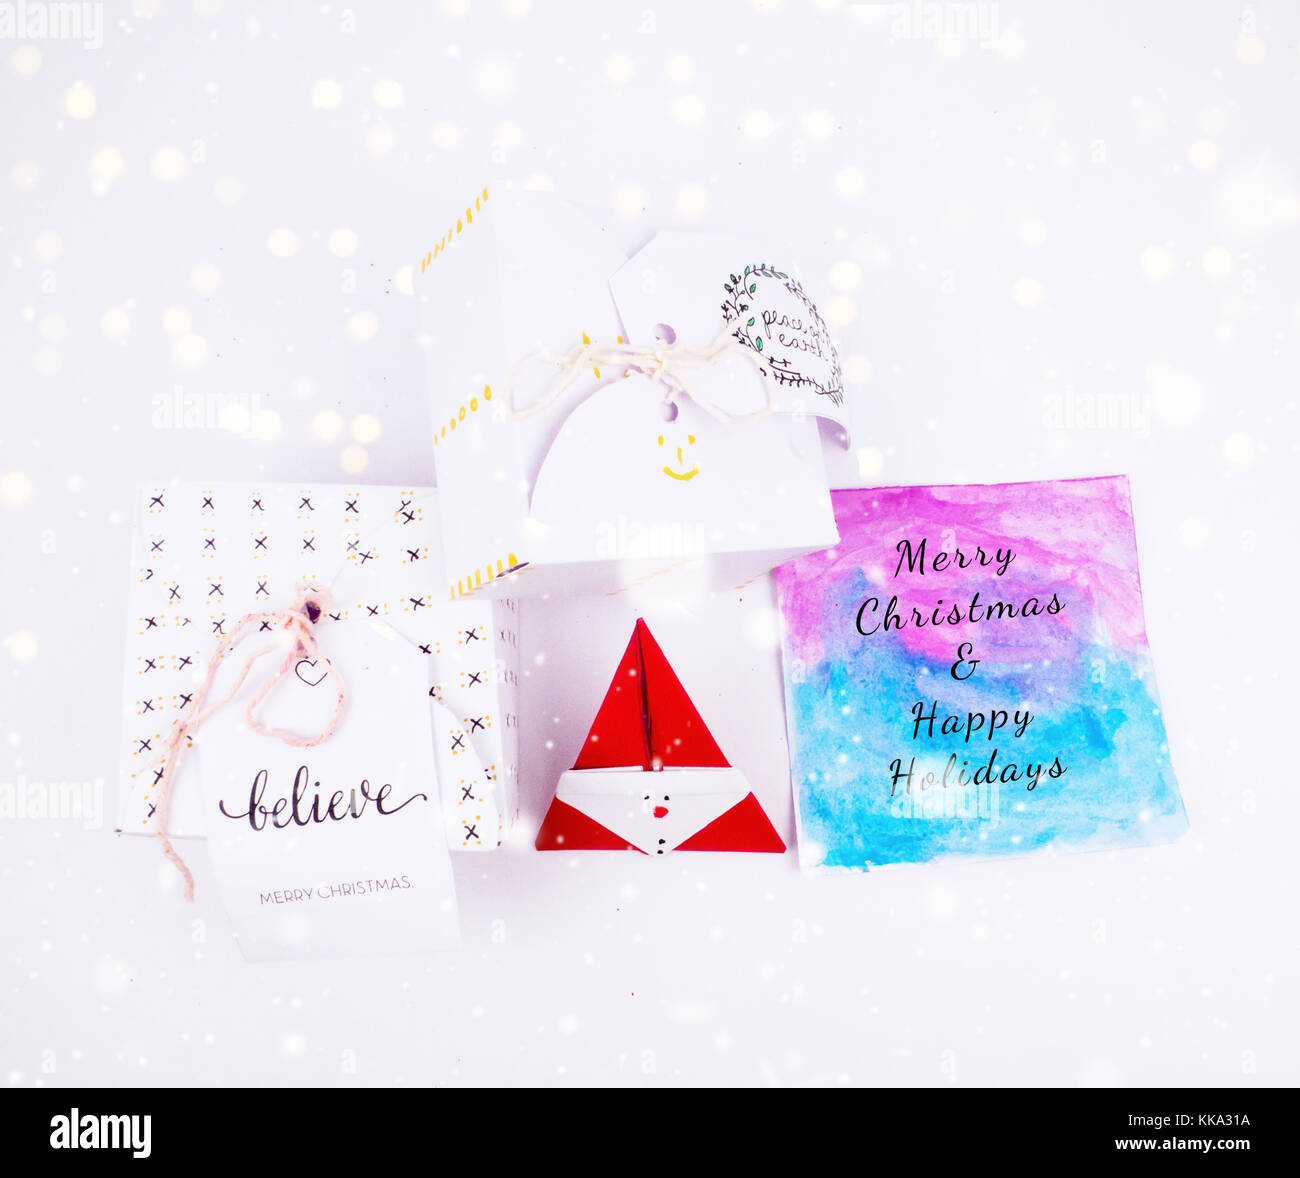 Christmas Decoration Diy Square Gift Box With Greeting Card For